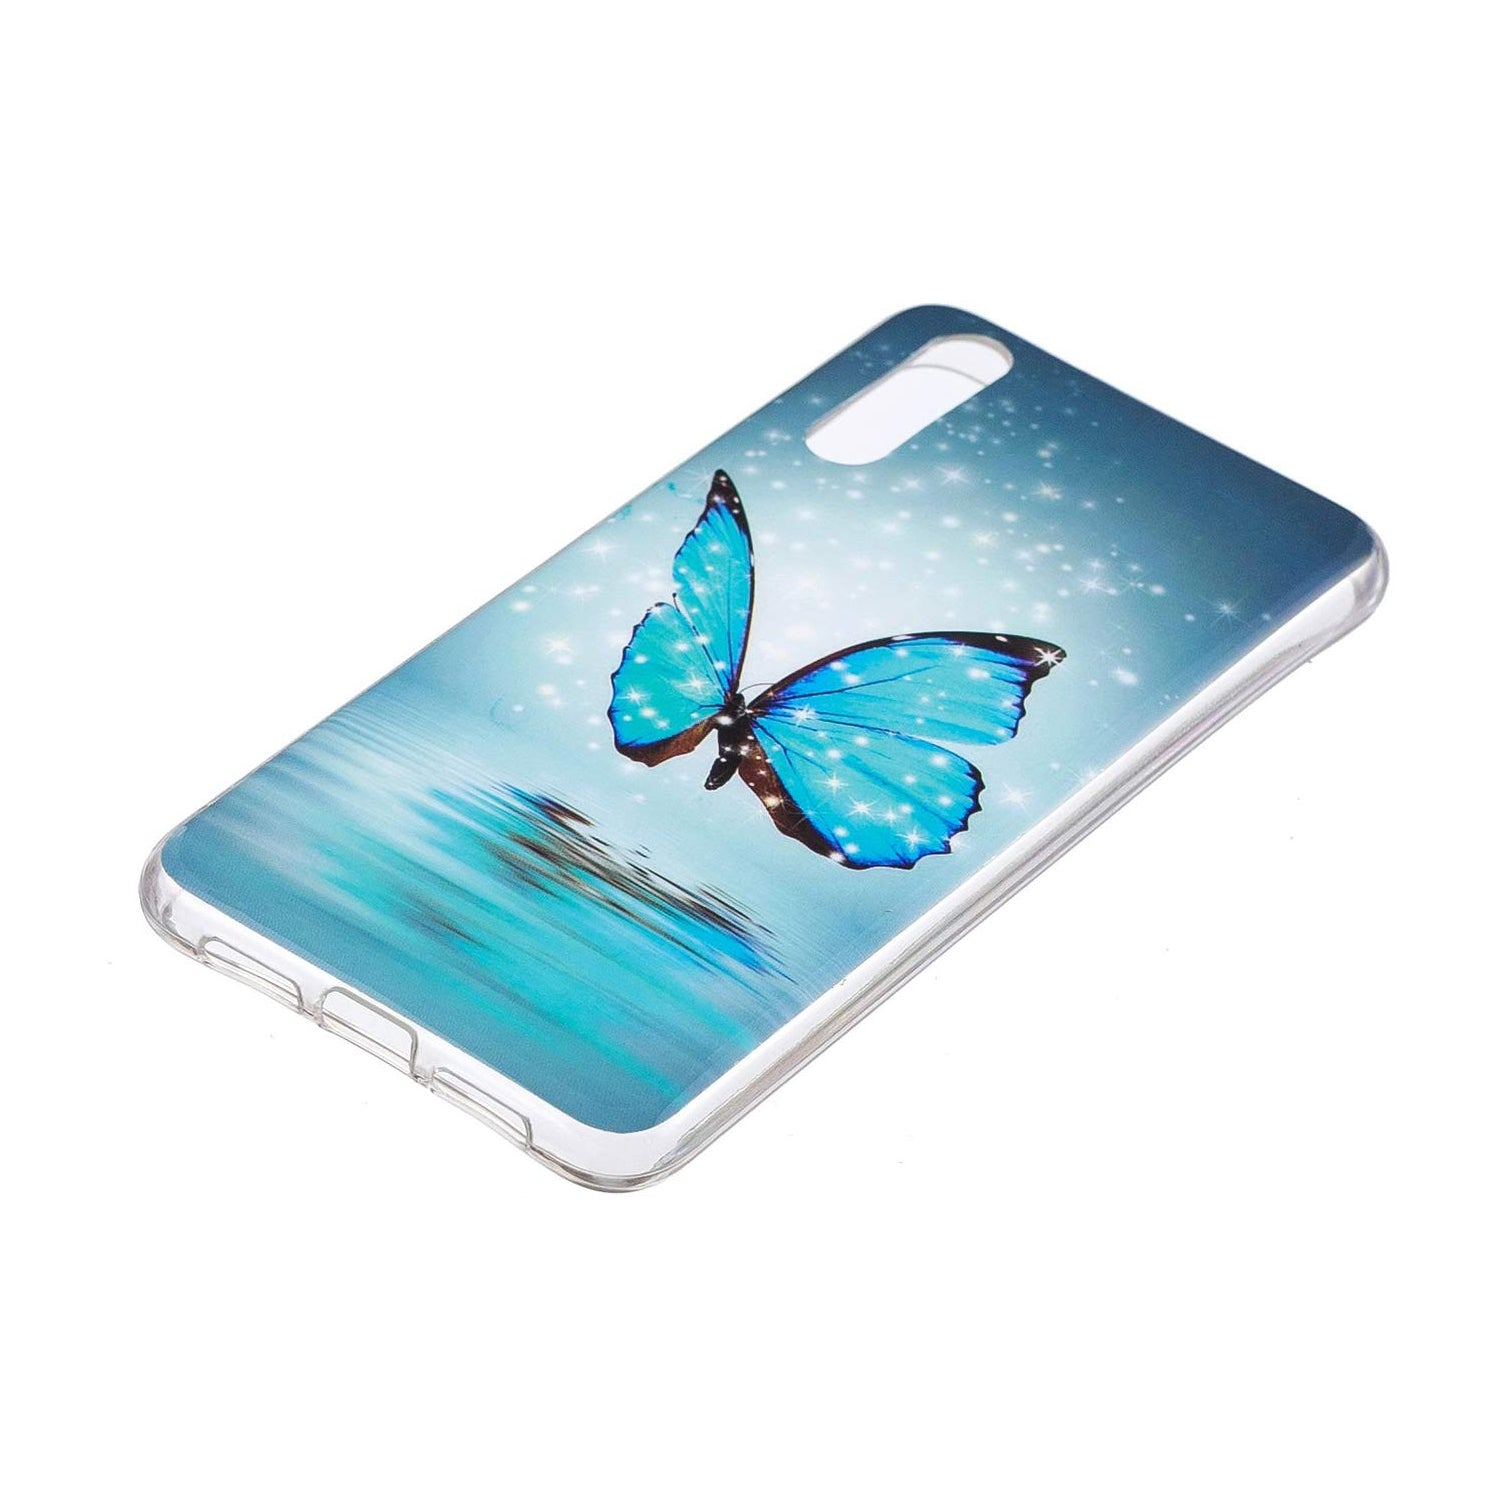 Husa silicon Huawei P20 model Model Butterfly, Fosforescent, Antisoc, TPU, Viceversa Multicolor